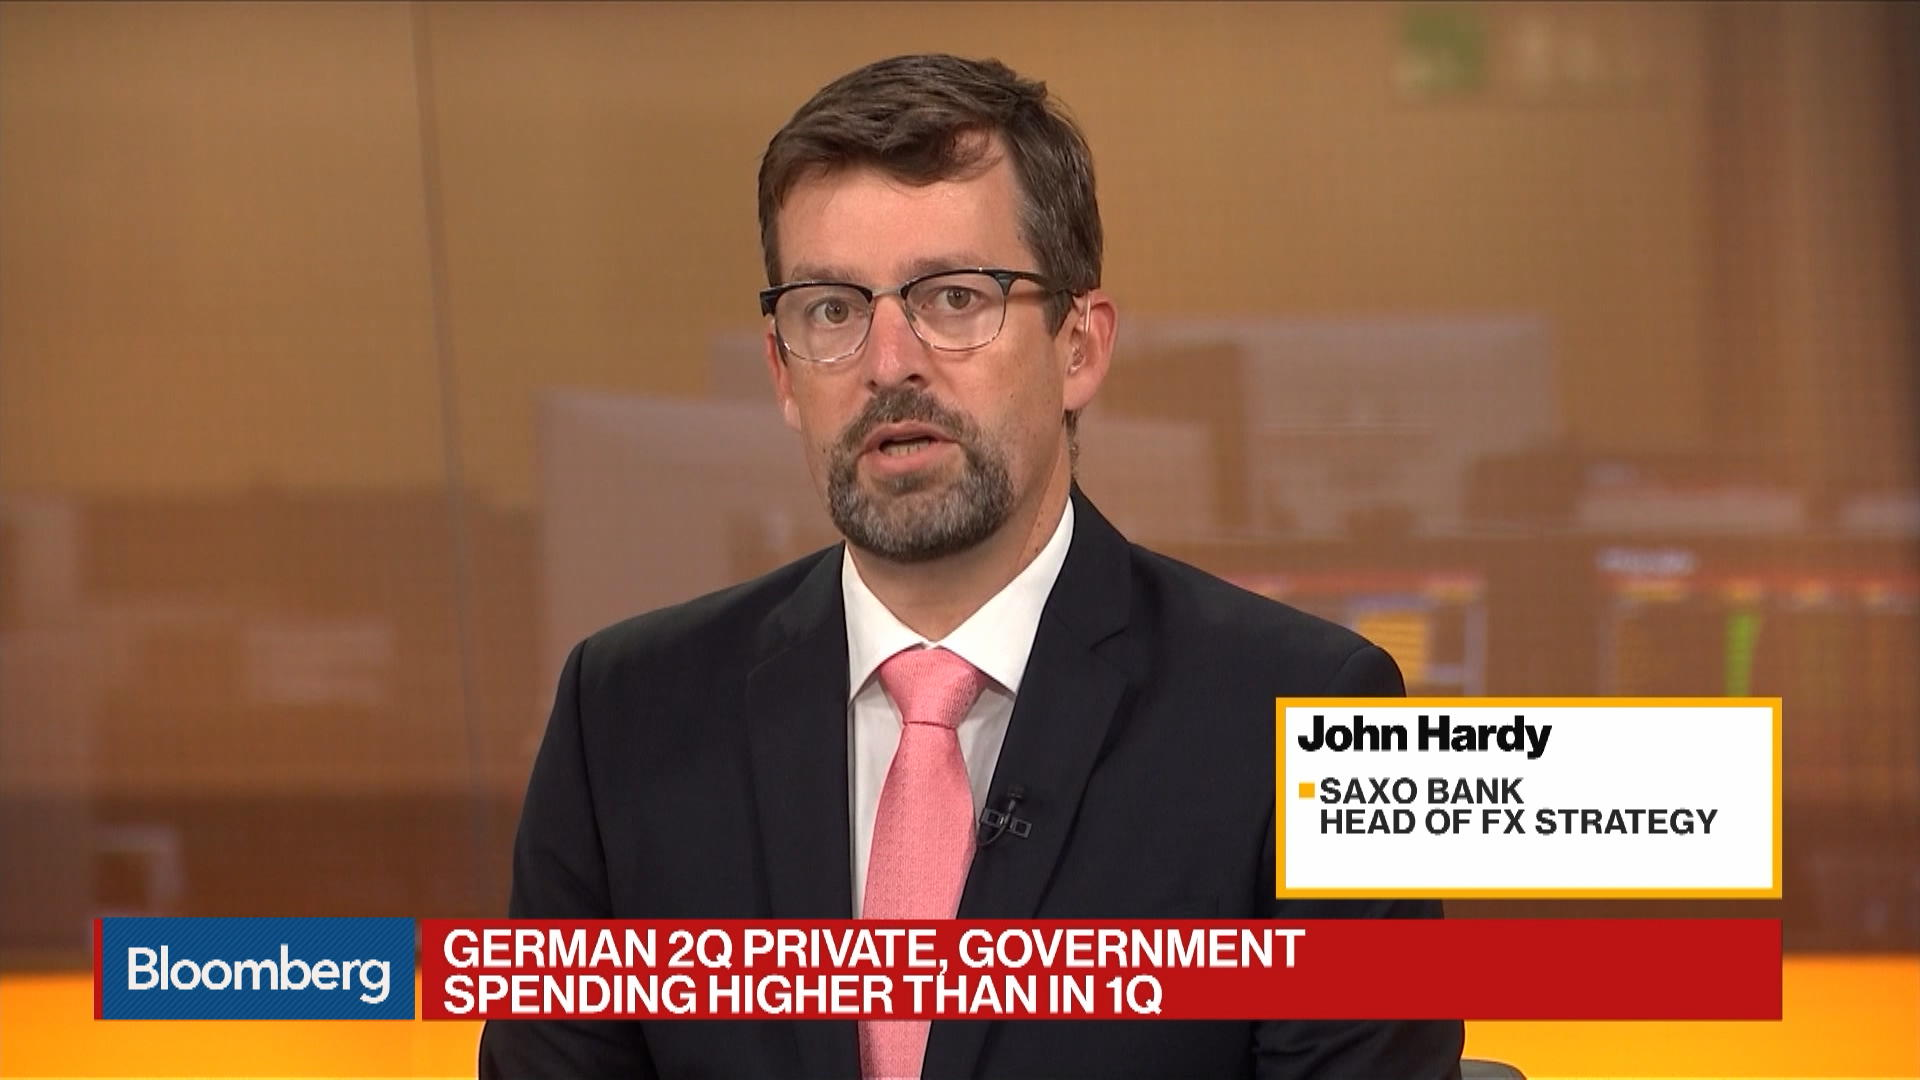 Saxo Bank Head of FX Strategy John Hardy on Germany GDP, Stimulus, Recession Risk